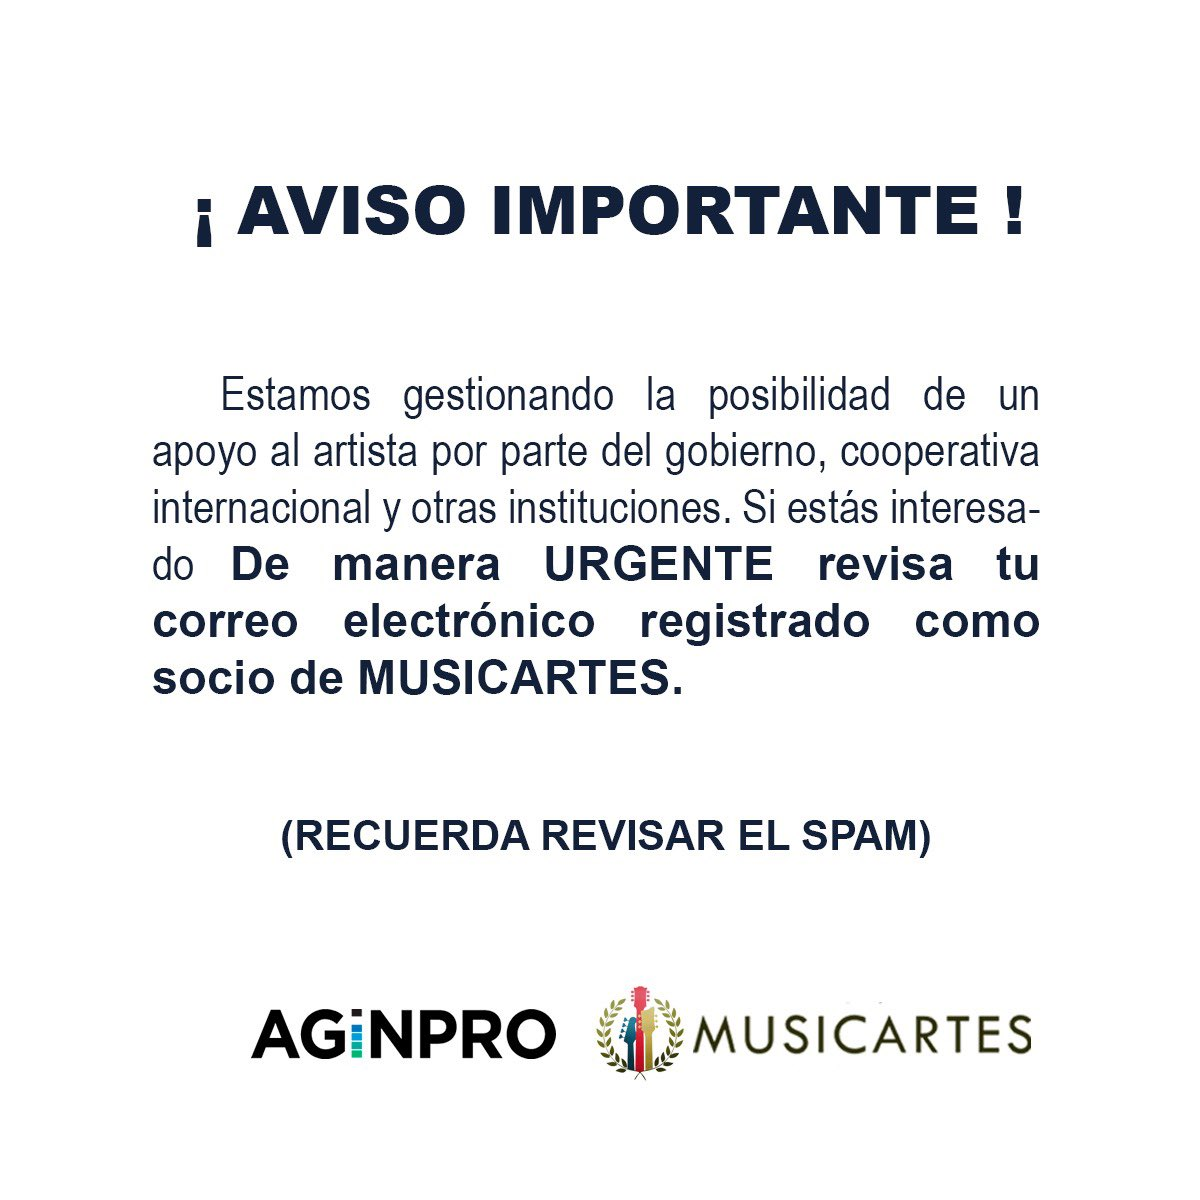 ⚠️AVISO IMPORTANTE⚠️ https://t.co/Nd76rEjROs